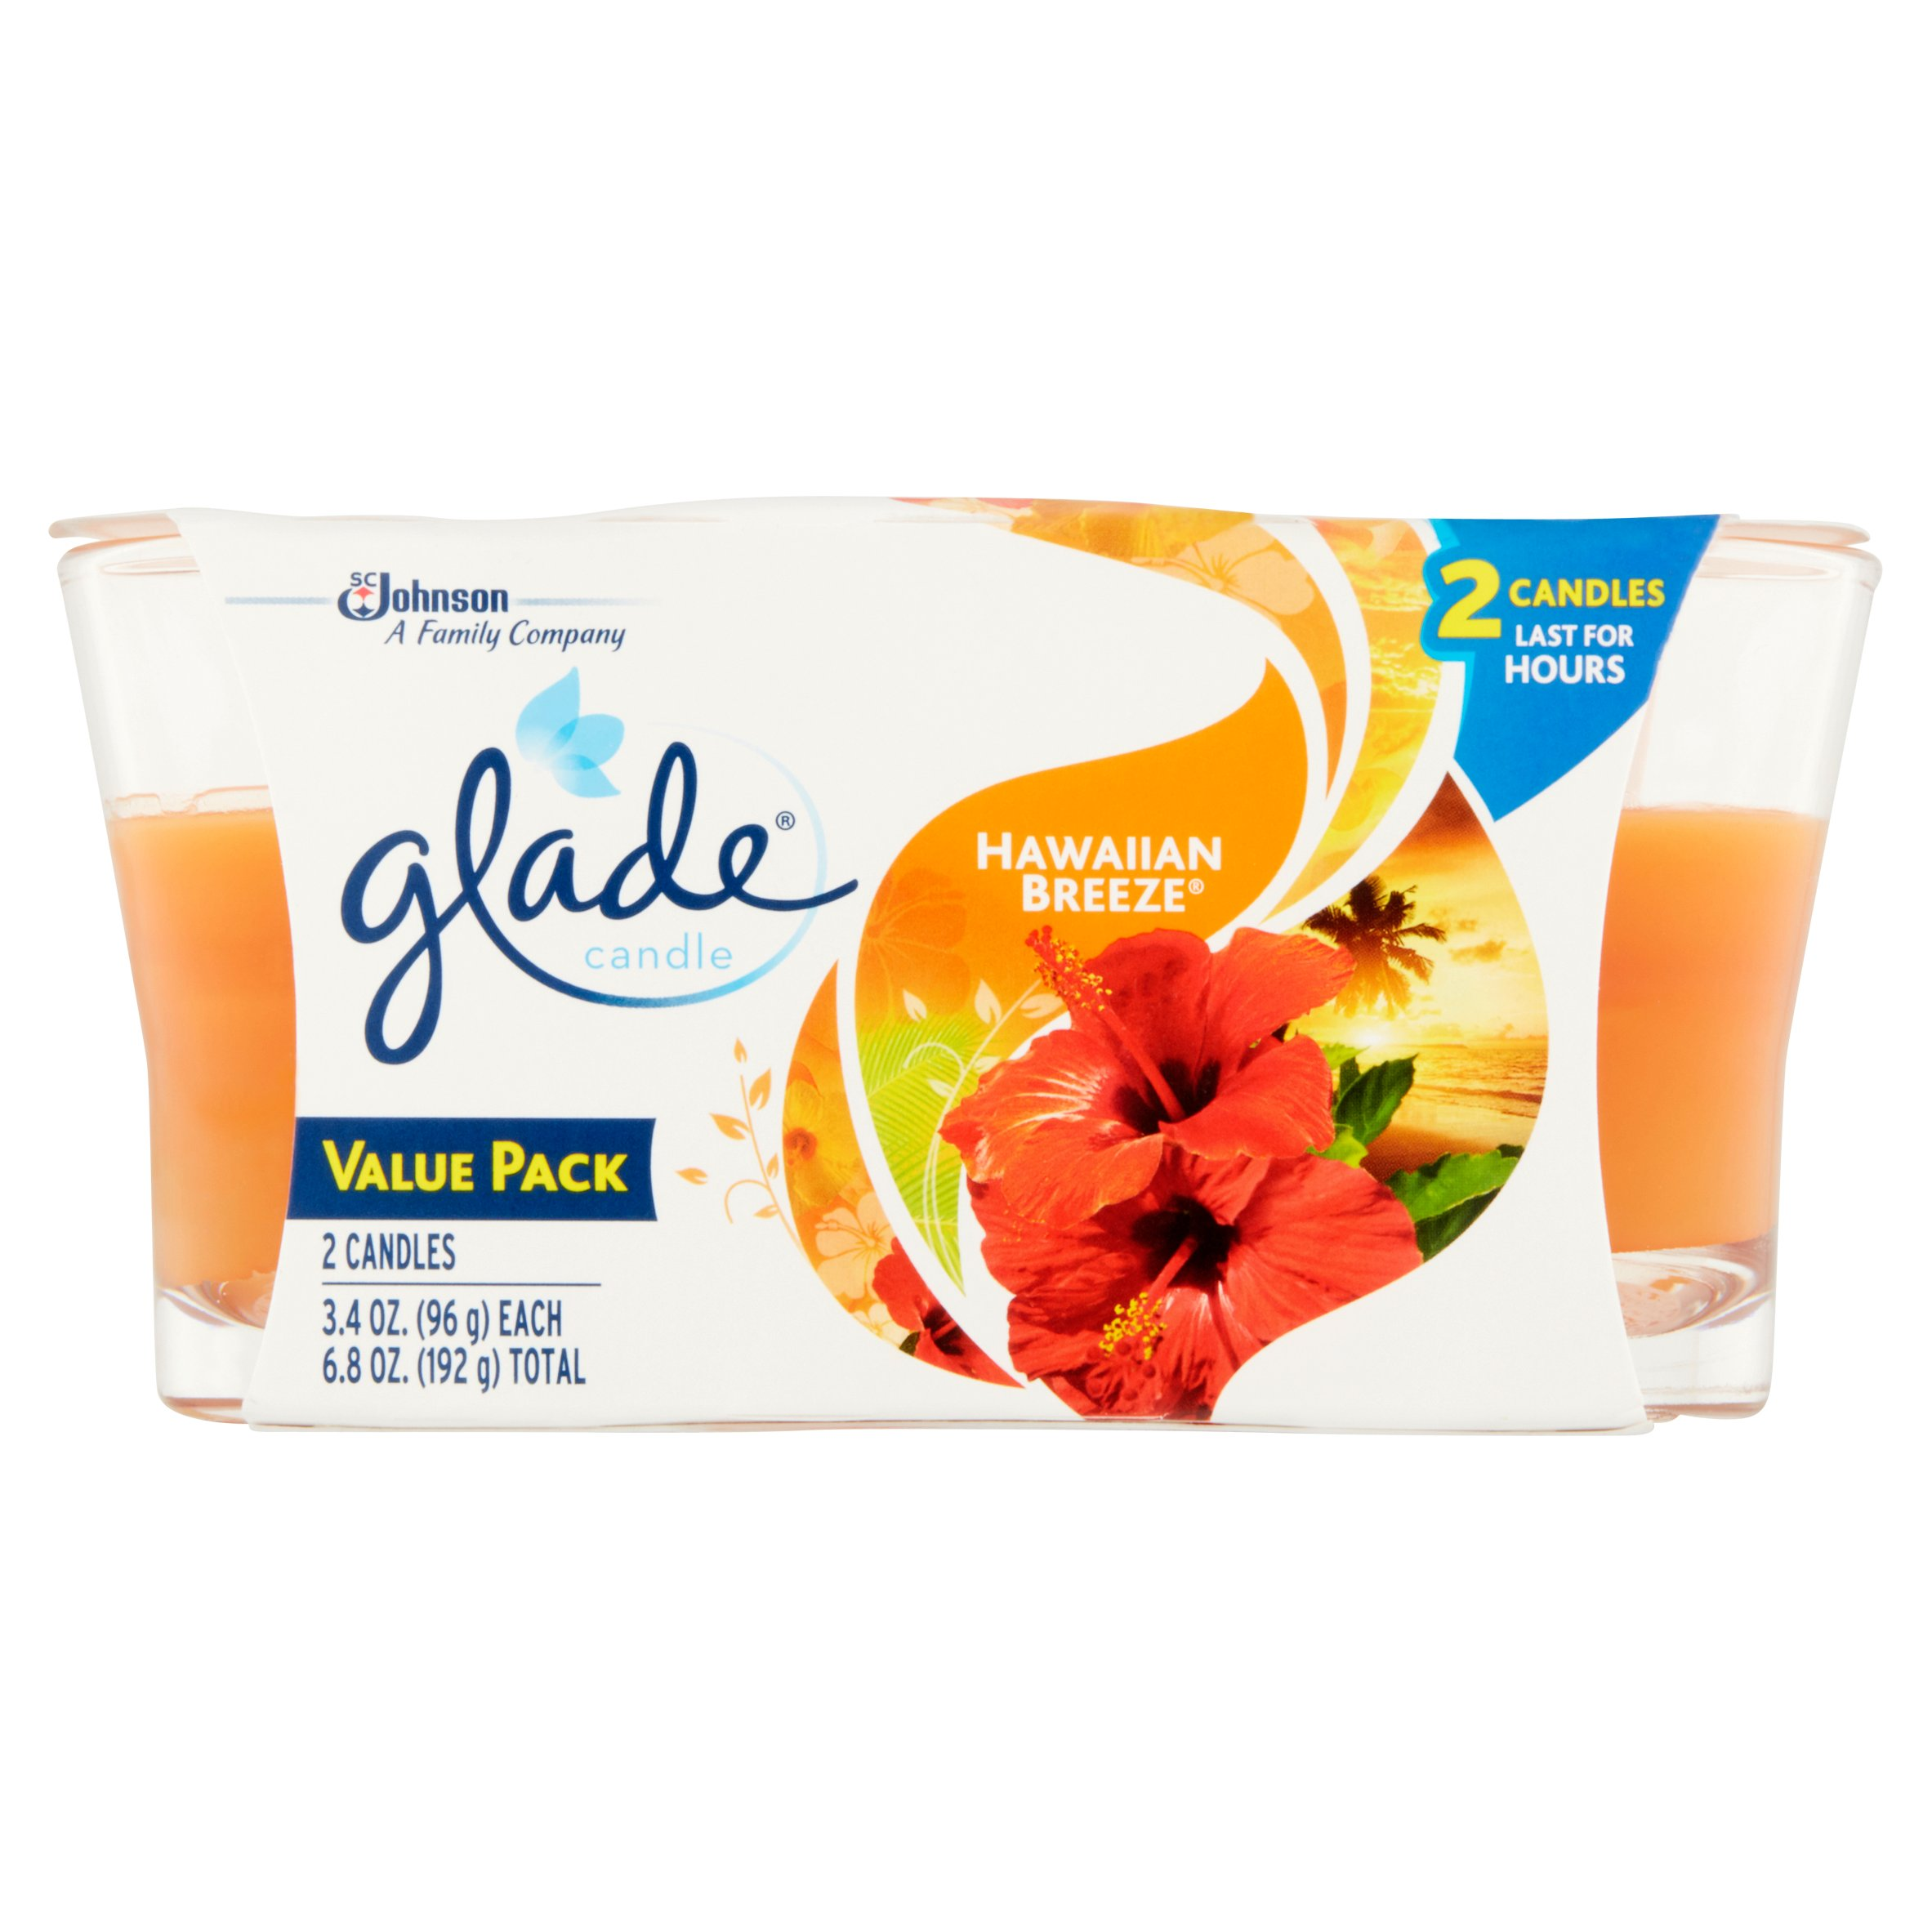 SC Johnson Glade Hawaiian Breeze Candles Value Pack, 3.4 oz, 2 pack